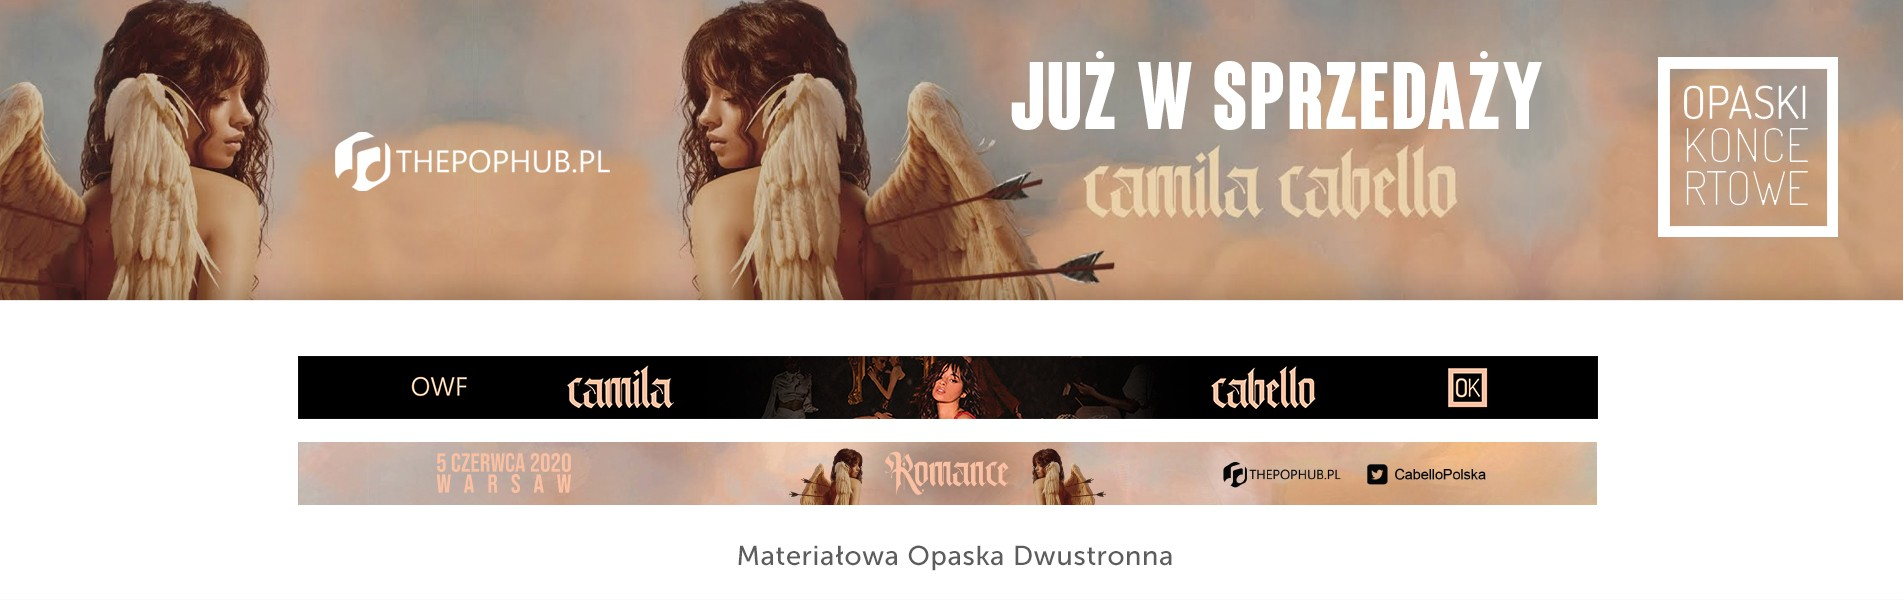 Camila Cabello - Orange Warsaw Festival 2020